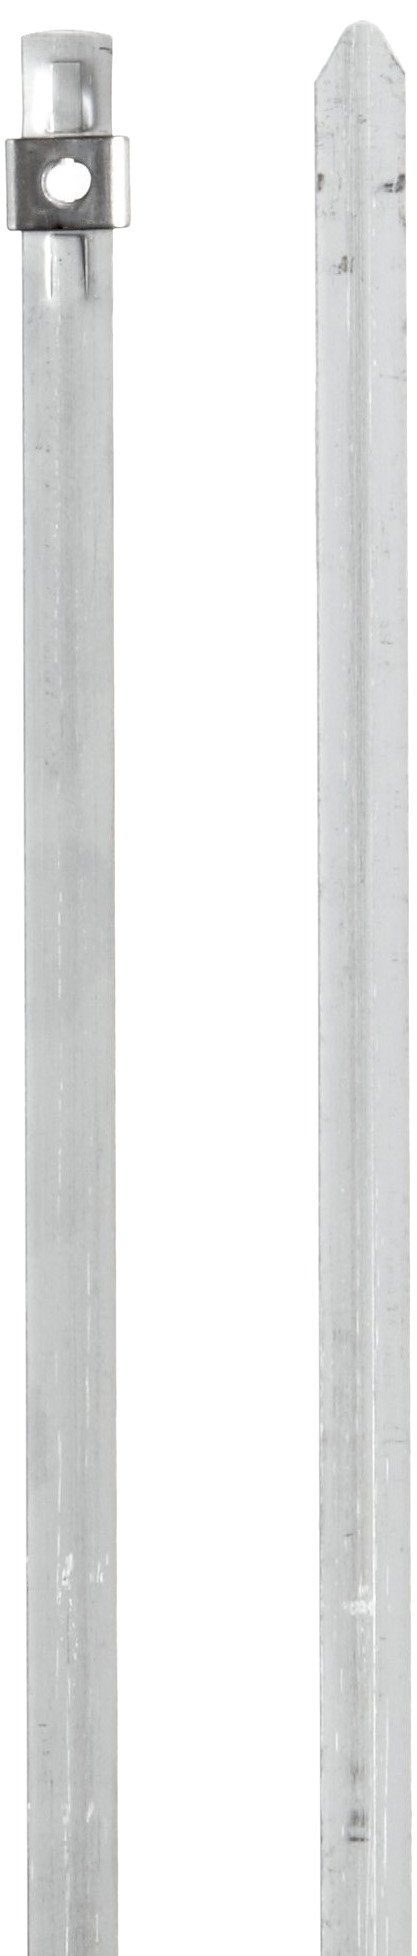 BAND-IT AS2119 304 Stainless Steel Cable Tie, 1/4'' Width, 10'' Length, 2'' Maximum Diameter, Bag of 100